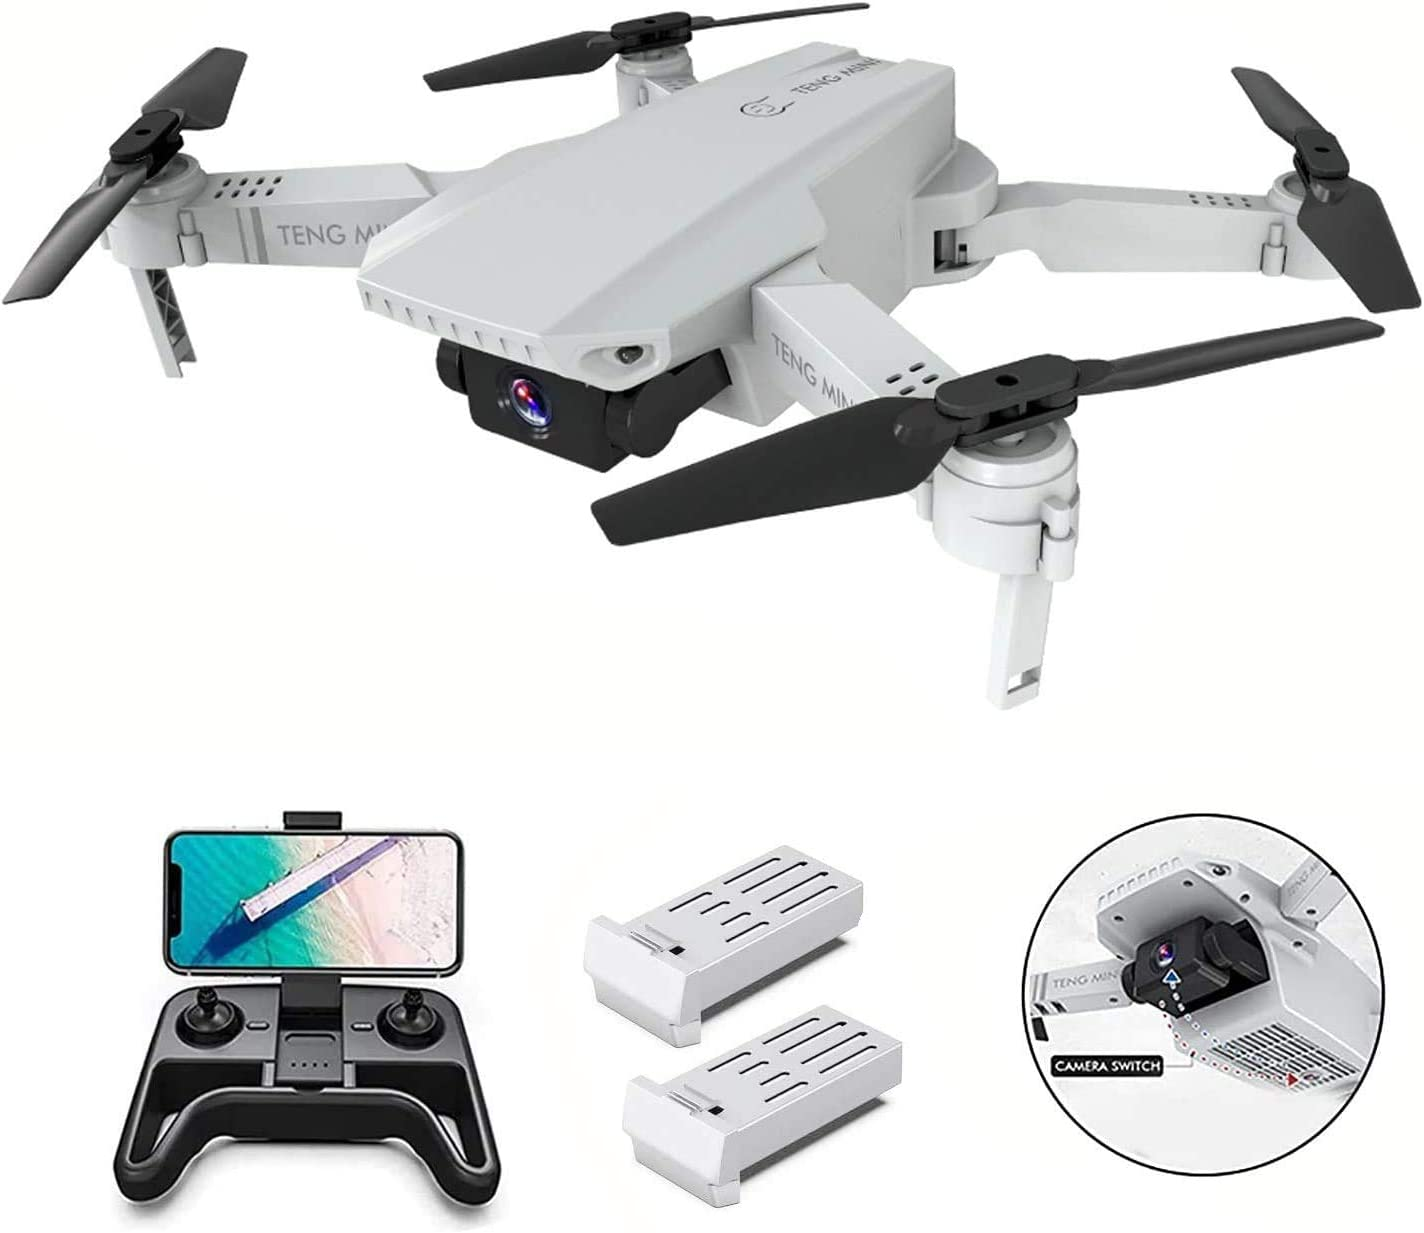 B-Qtech Drone with Dual Camera 4K for Adults & Kids & Beginners, 2.4Ghz Foldable RC Quadcopter with Long Flight Time, Smart Follow, WiFi FPV Live Video, Gesture Operation, Headless Mode(2 Batteries)